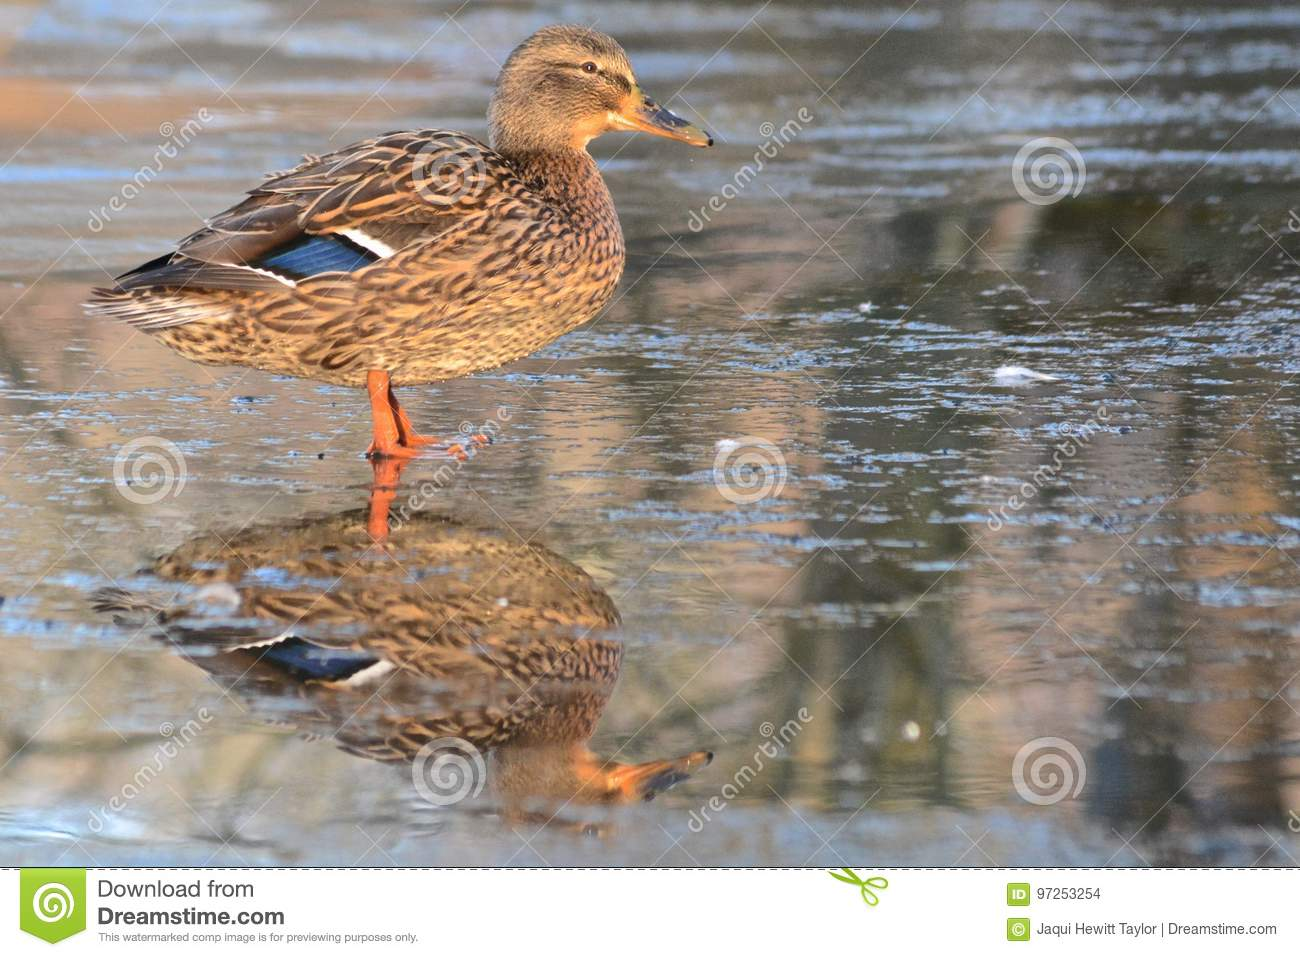 Download A duck standing on ice stock photo. Image of southampton - 97253254